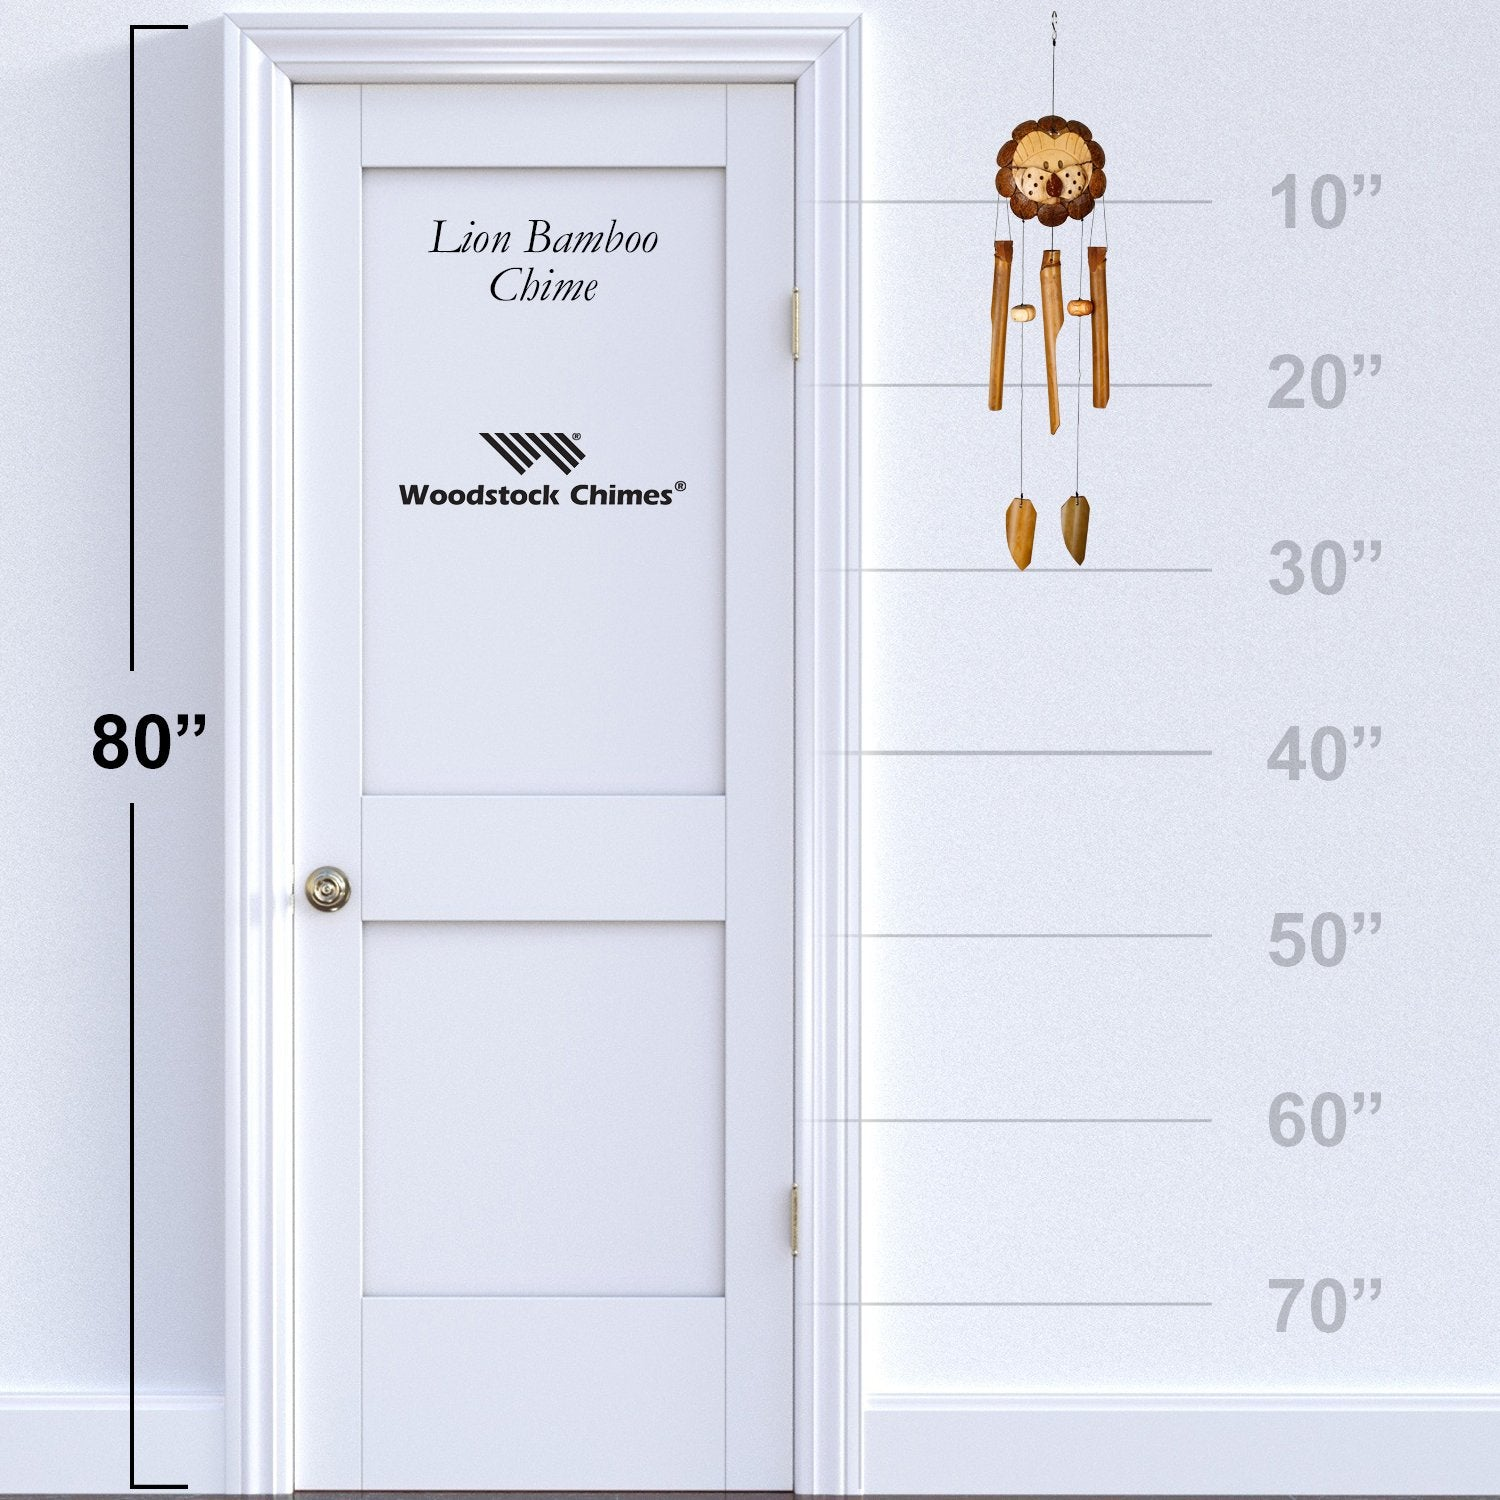 Lion Bamboo Chime proportion image